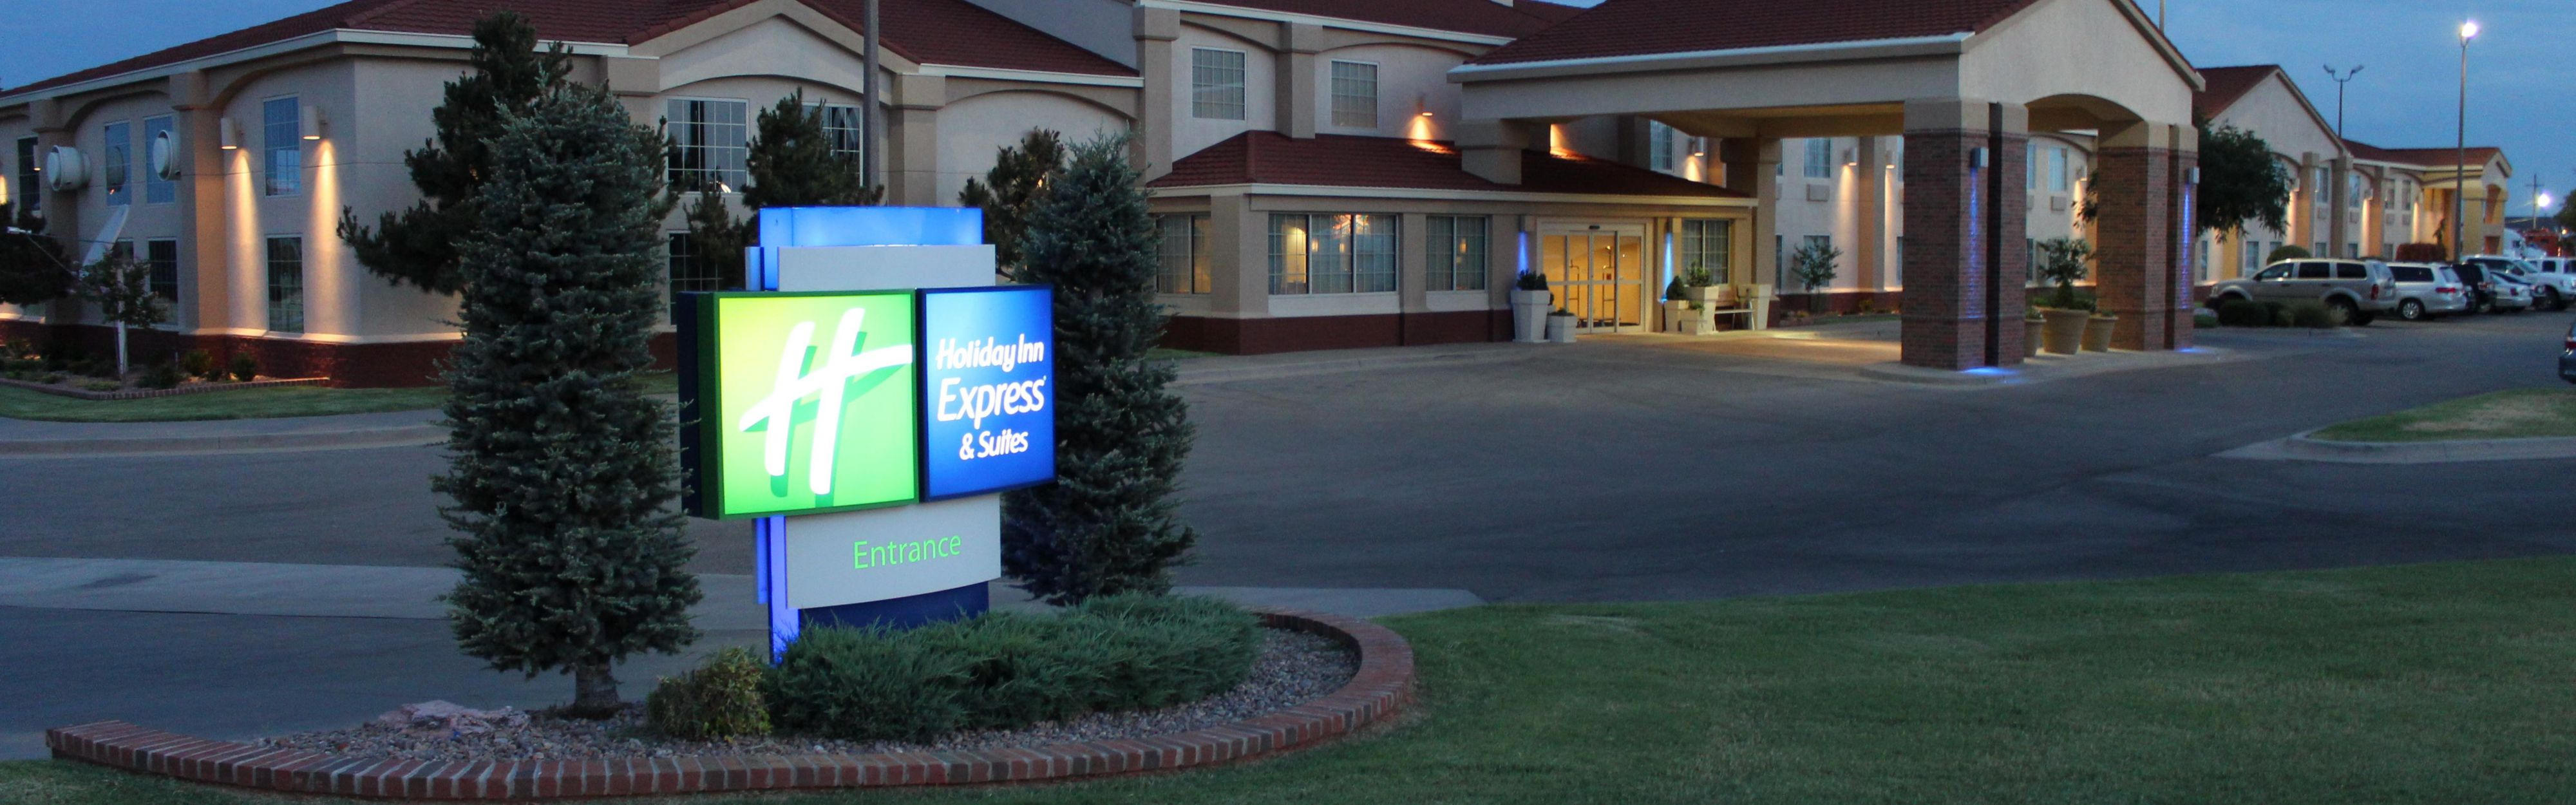 Holiday Inn Express & Suites Weatherford image 0